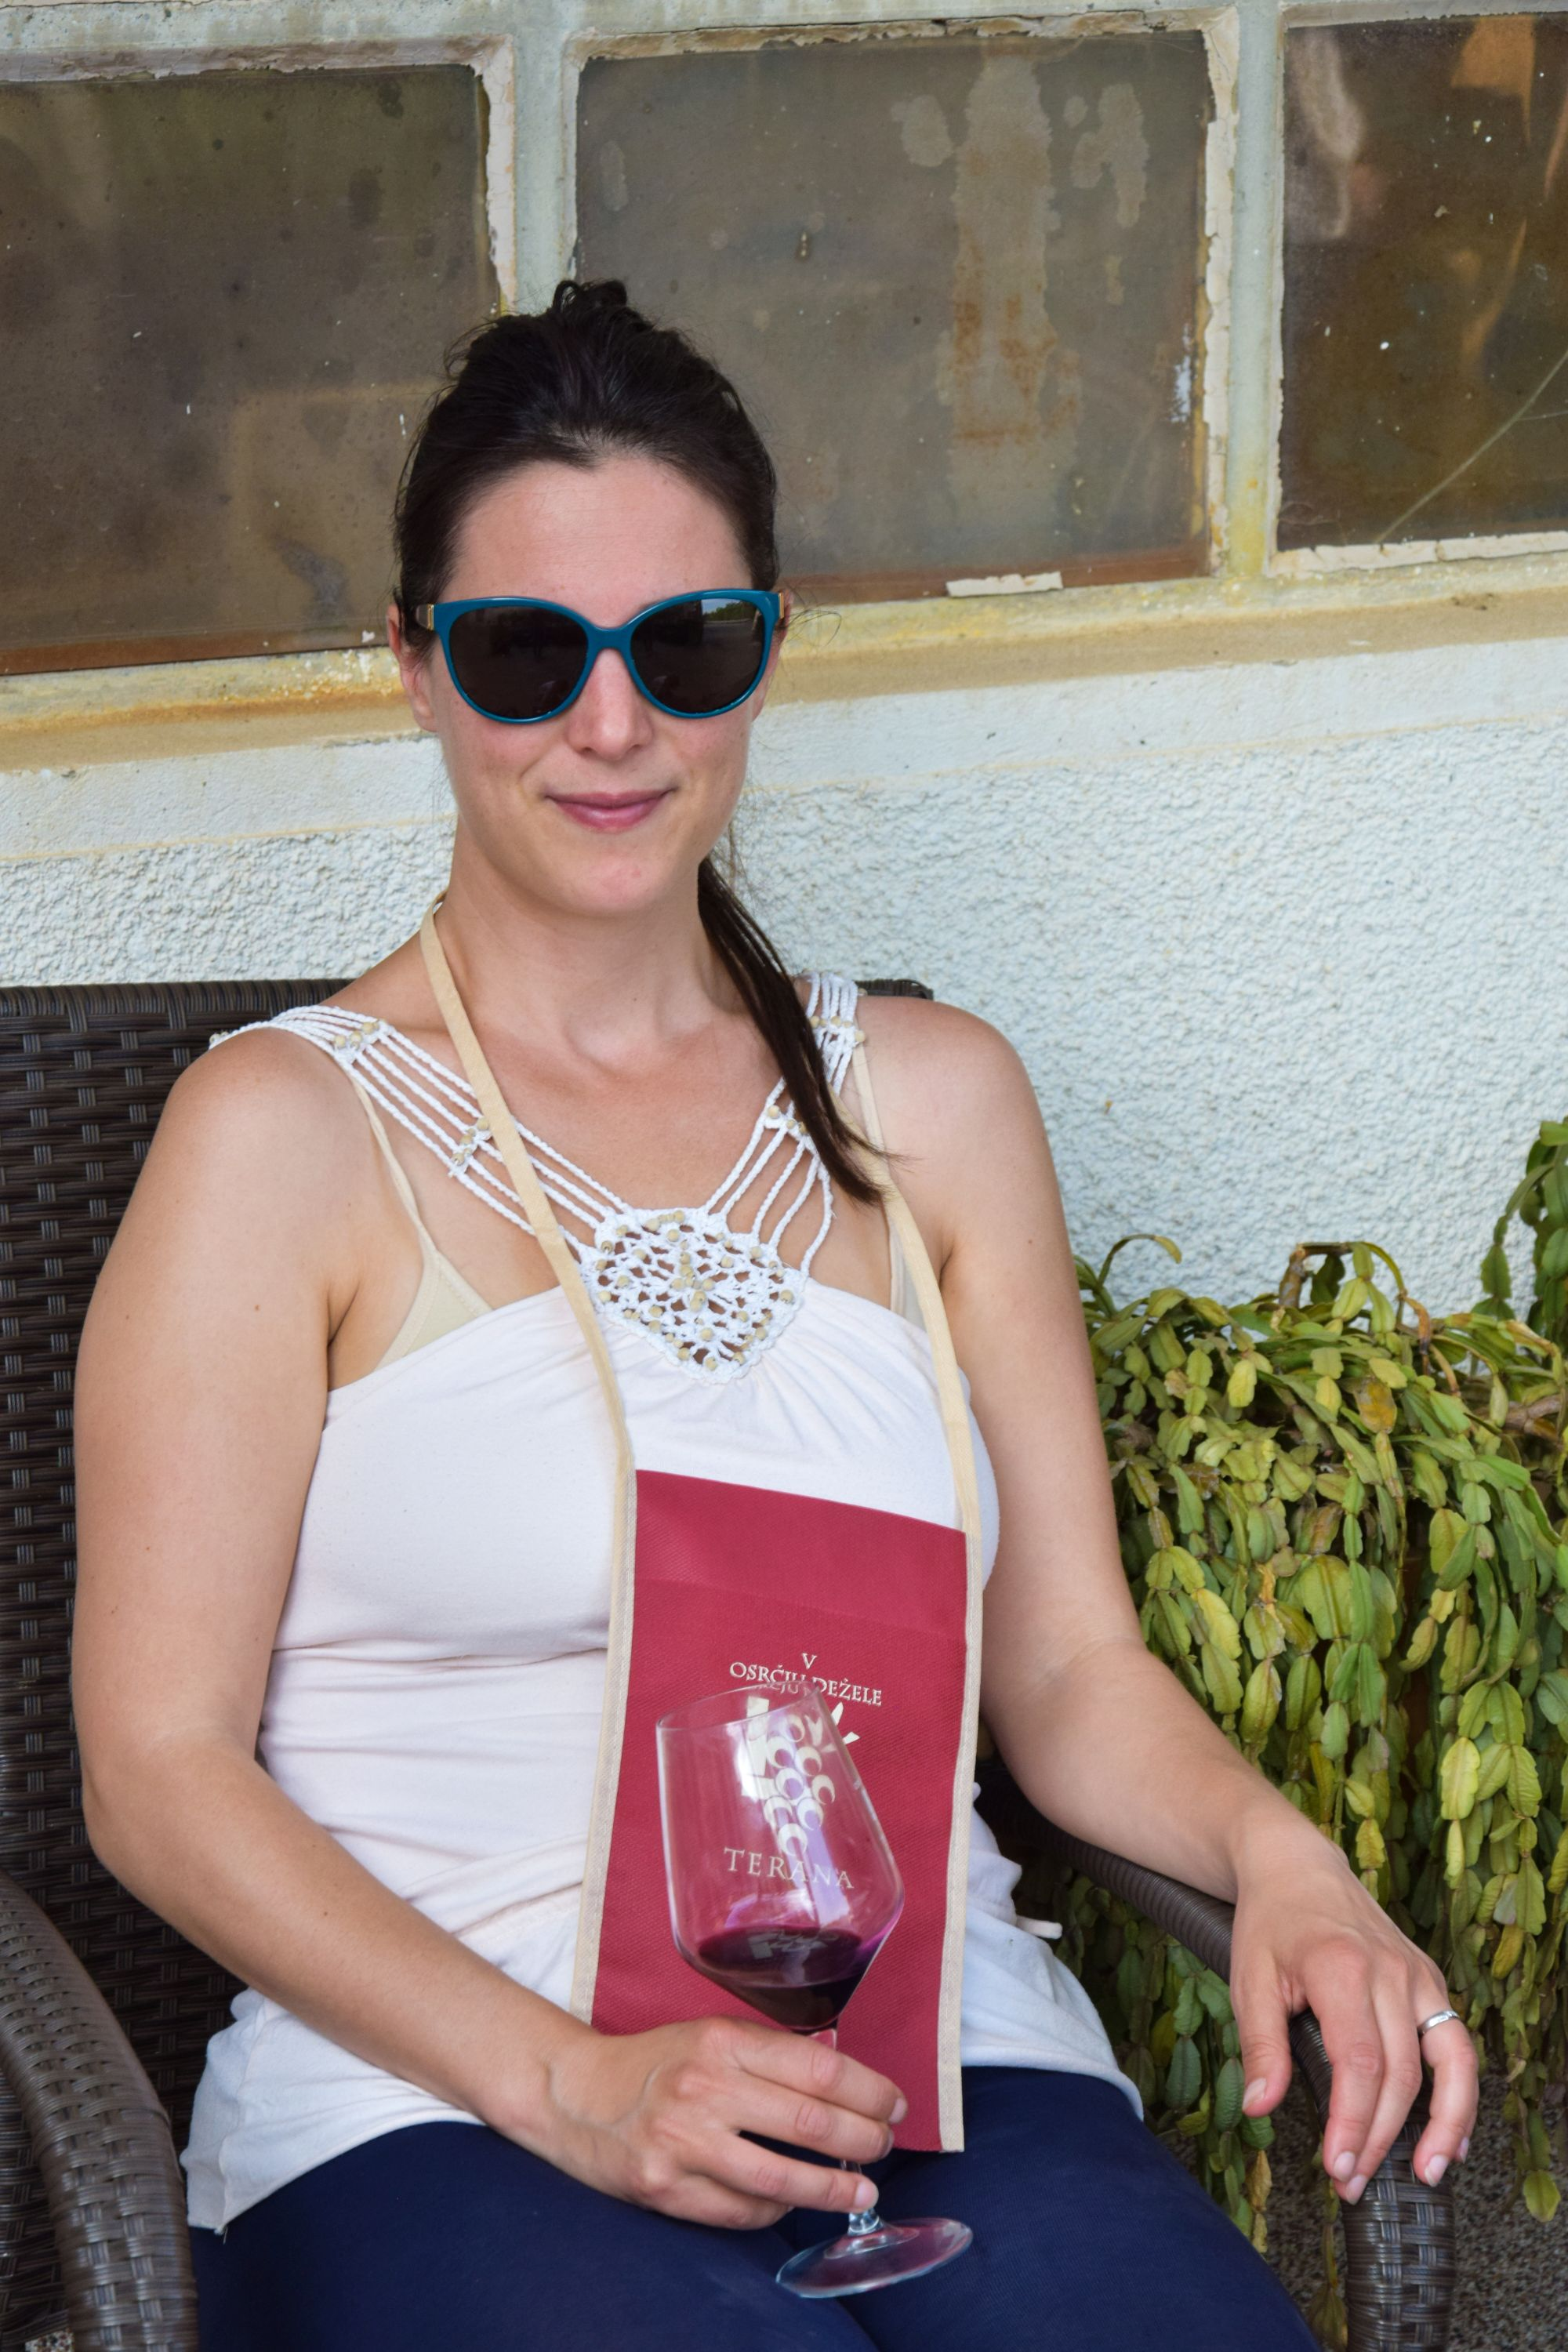 Blogger drinks a glass of red Teran wine